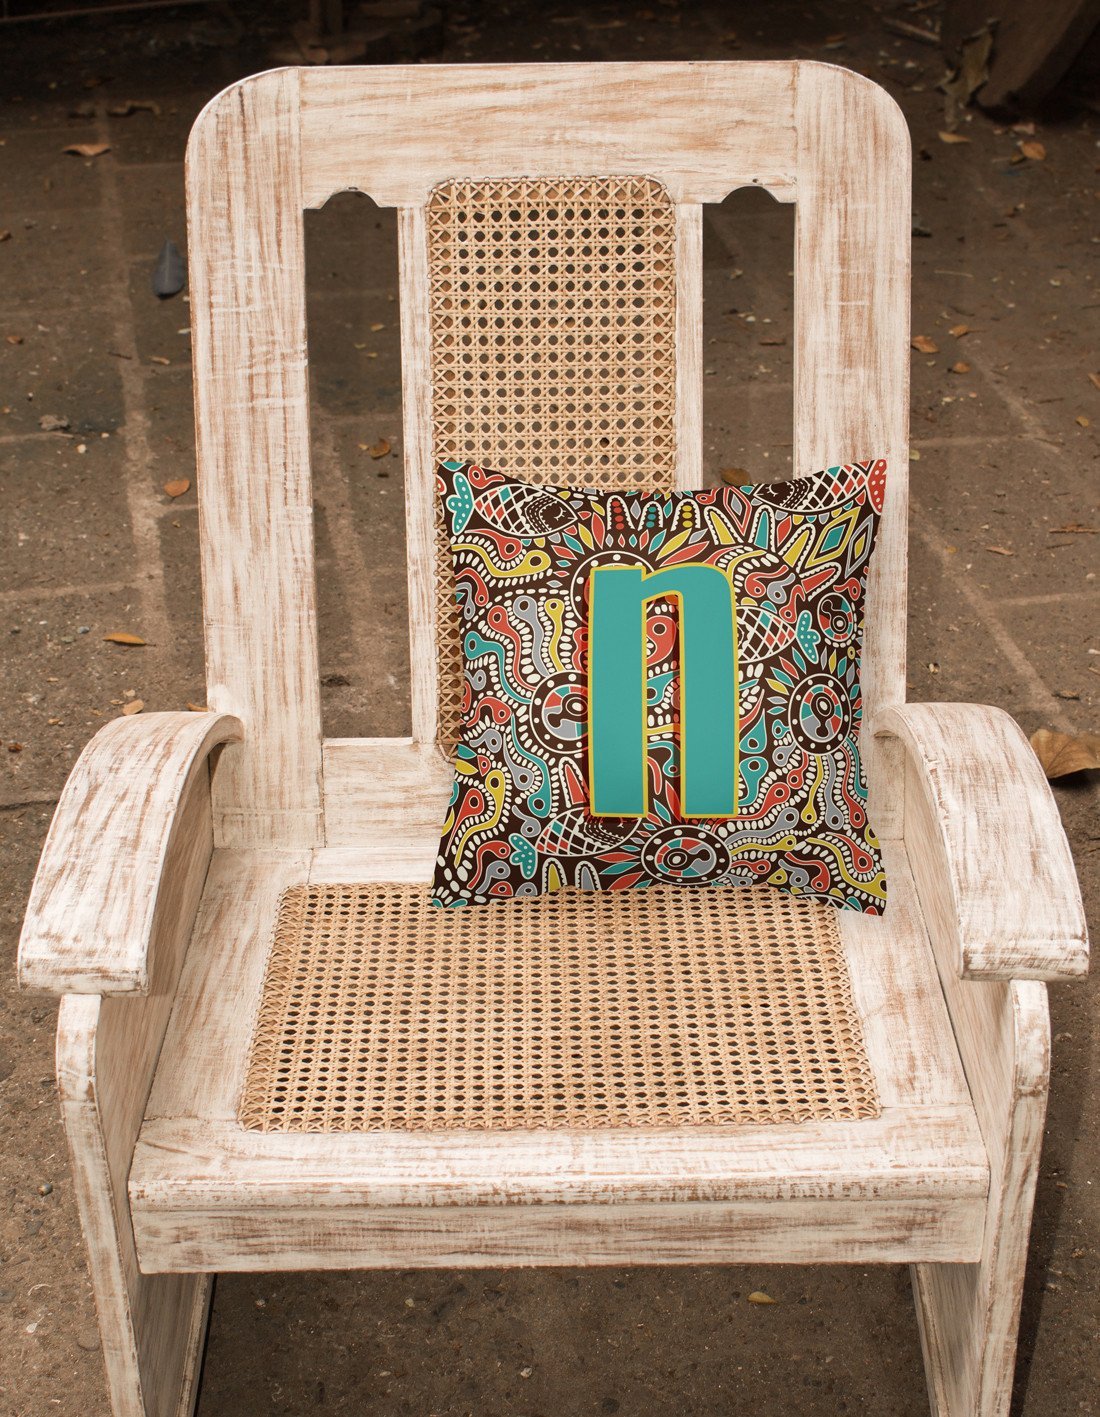 Letter N Retro Tribal Alphabet Initial Canvas Fabric Decorative Pillow CJ2013-NPW1414 by Caroline's Treasures